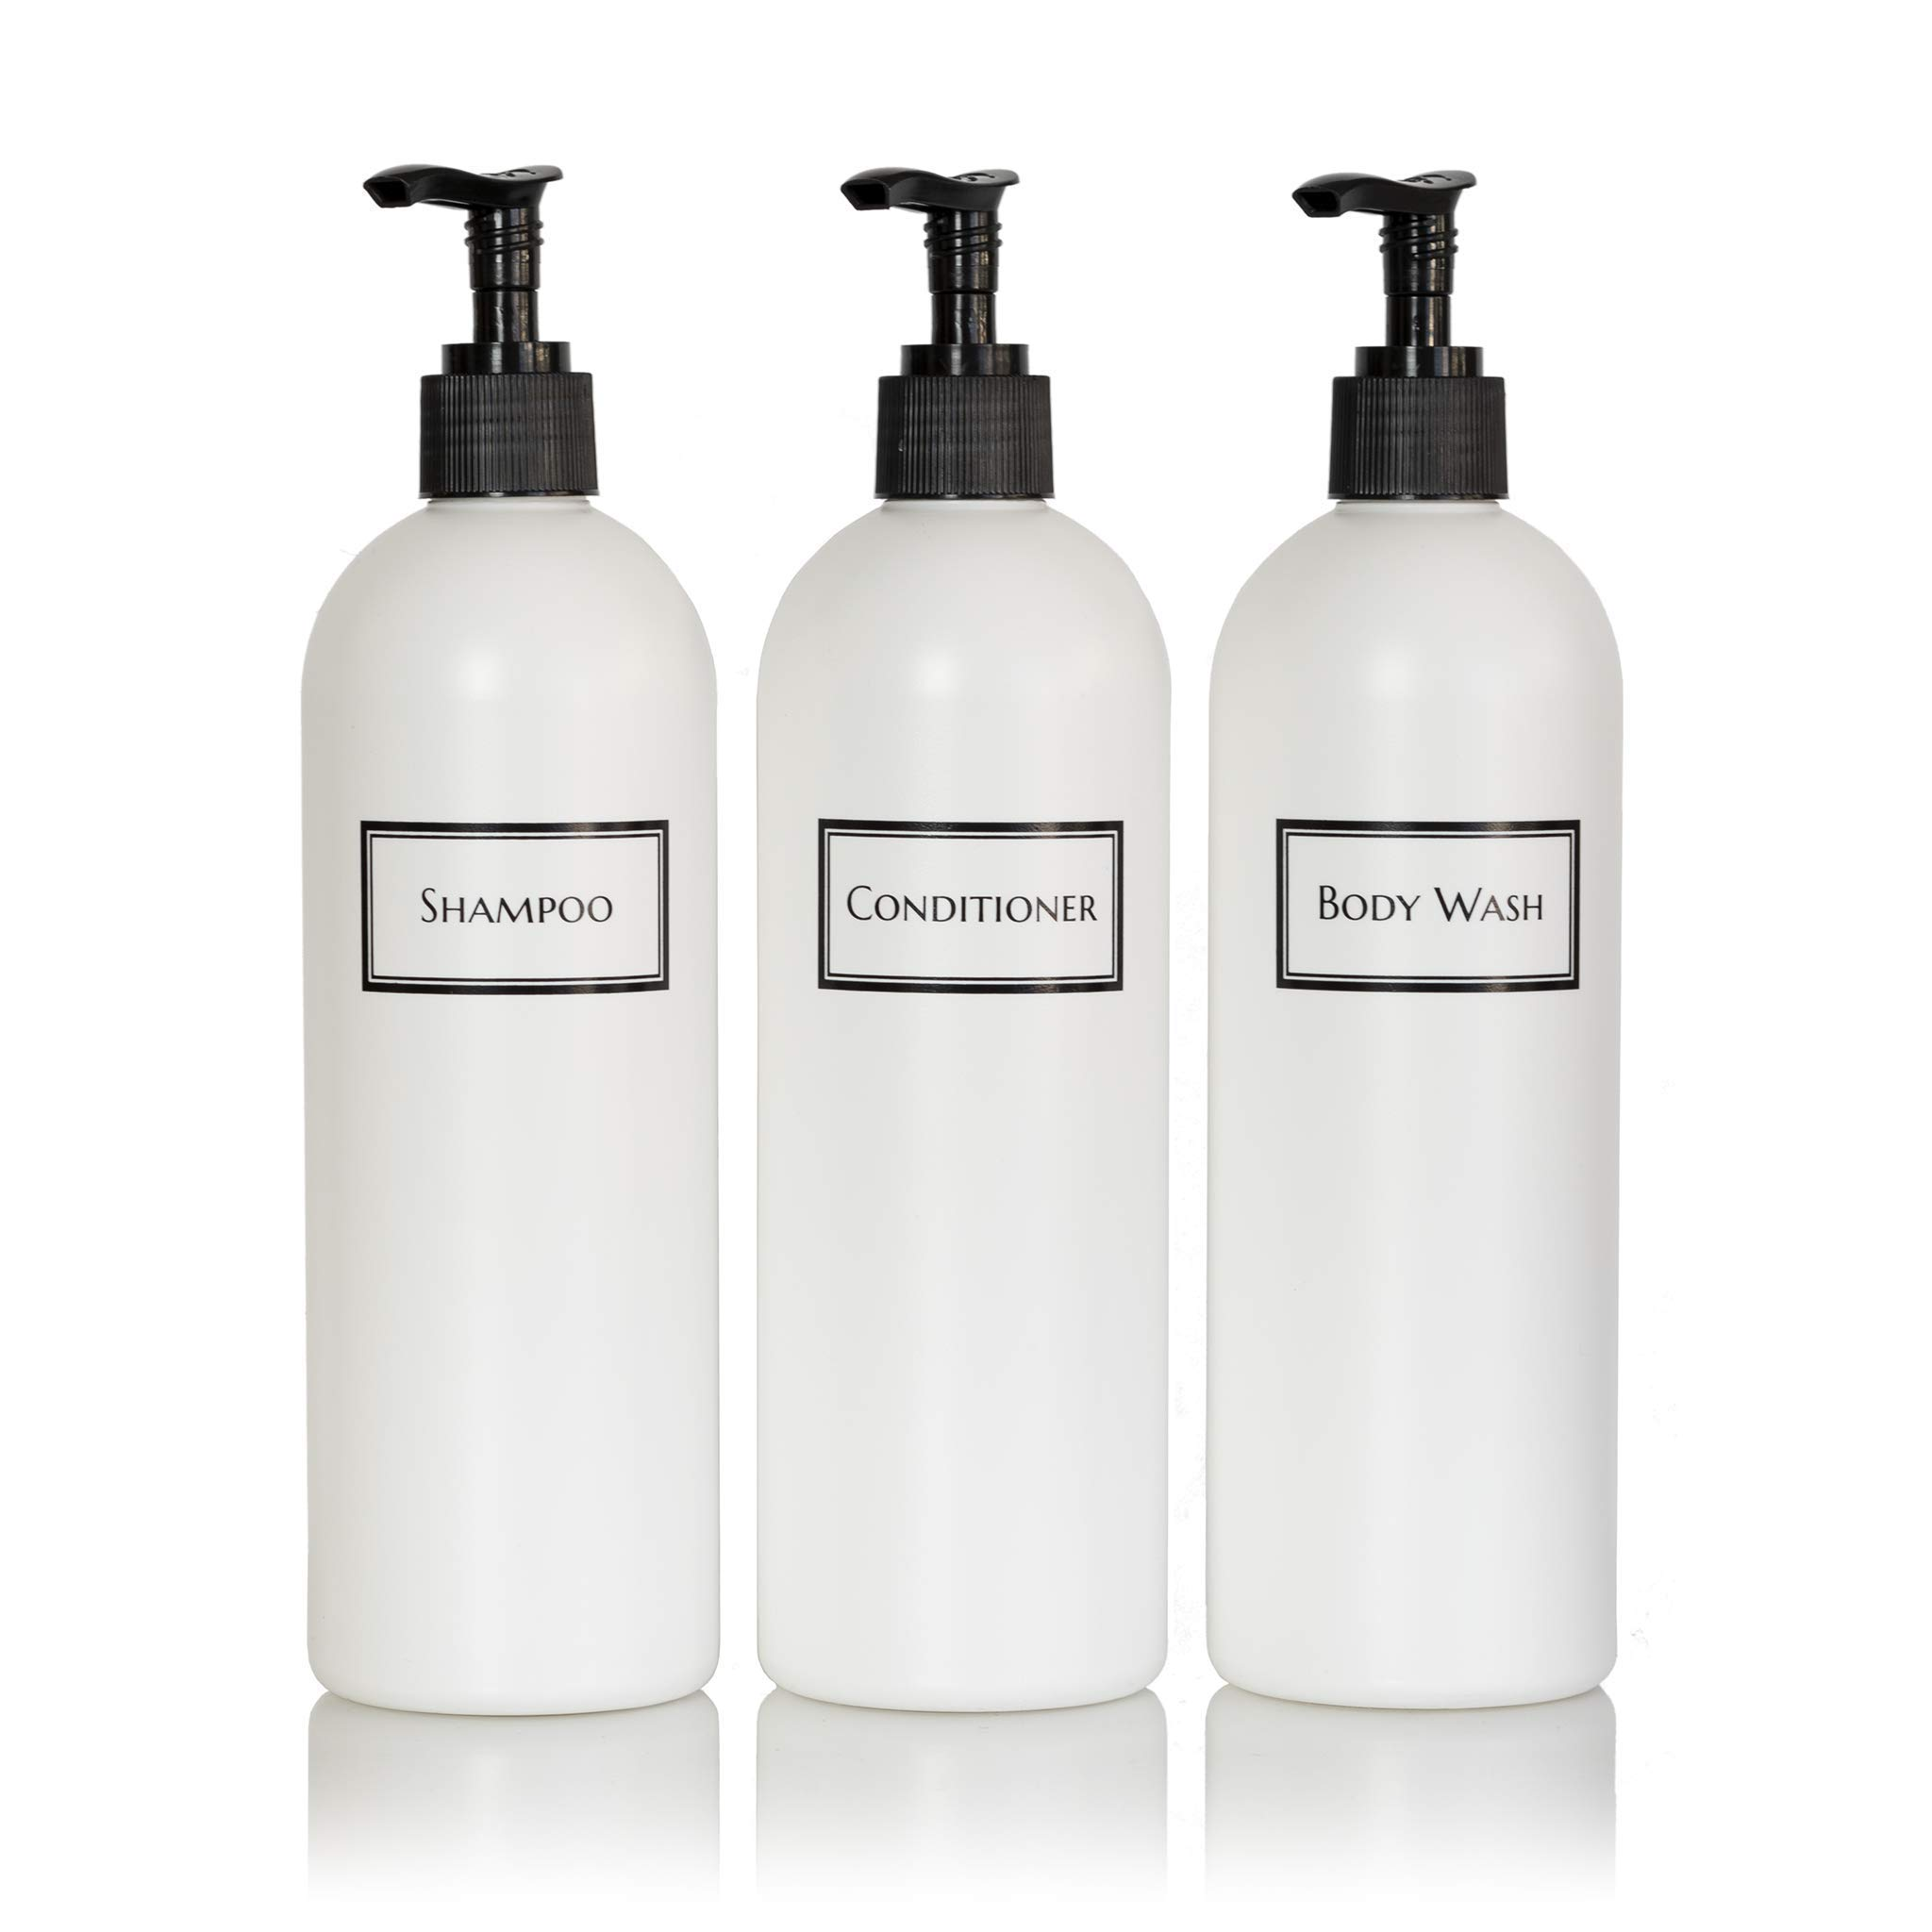 Artanis Home Silkscreened Empty Shower Bottle Set for Shampoo, Conditioner, and Body Wash, 16 oz 3-Pack, White (Black Pumps)